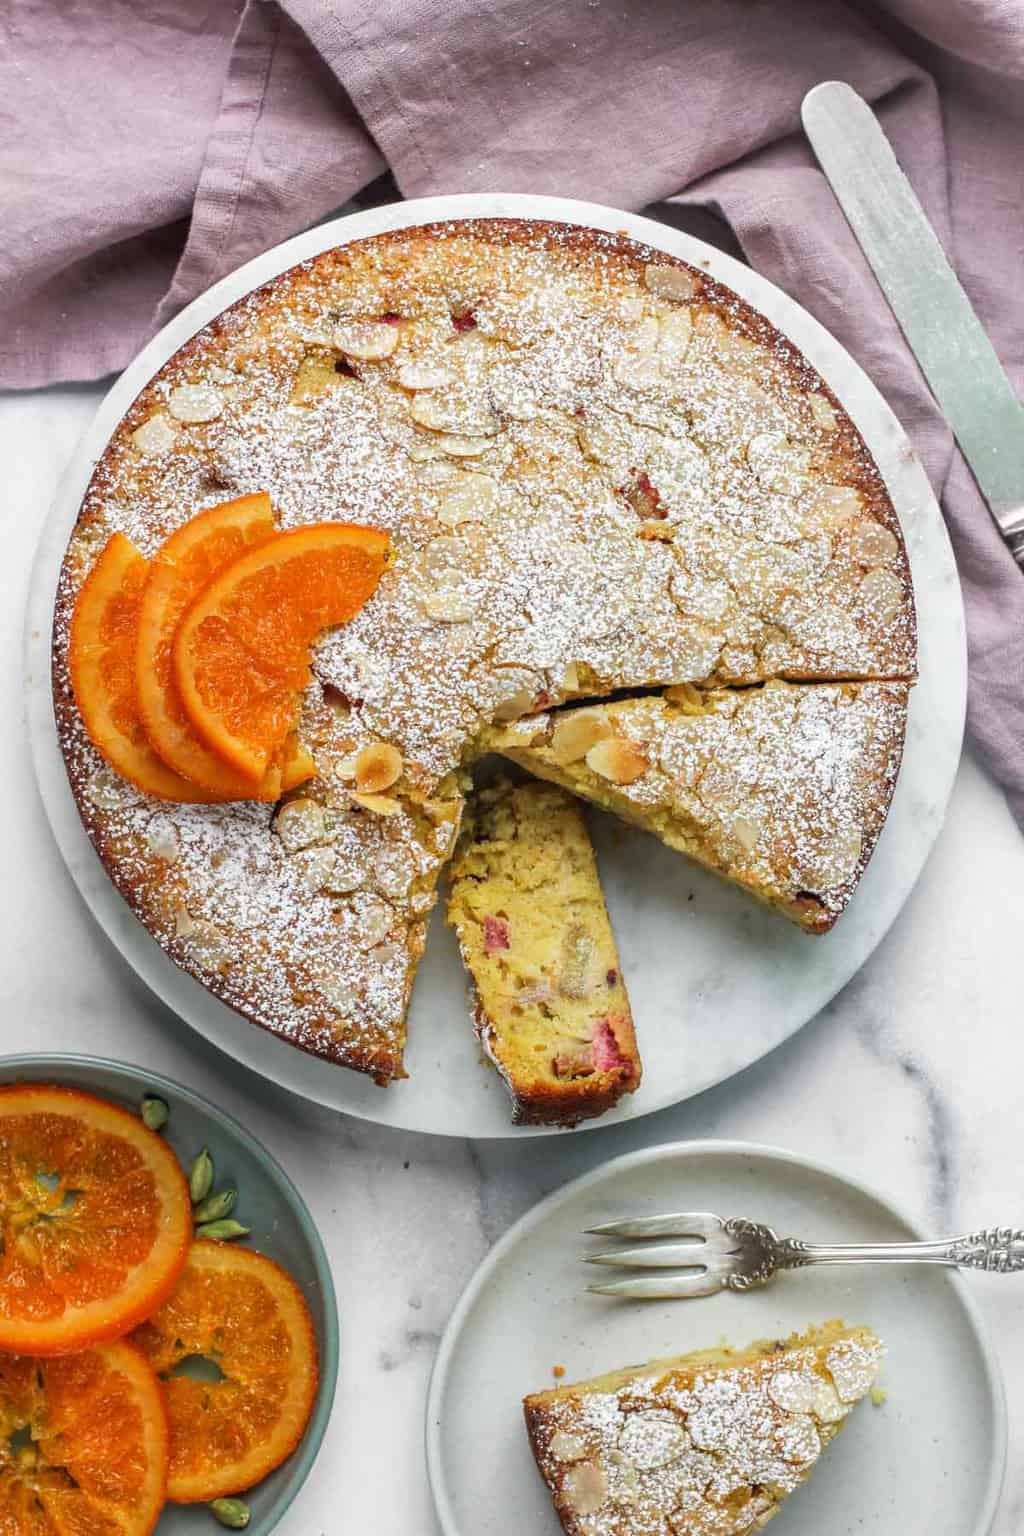 rhubarb almond cake with powdered sugar and candied orange slices